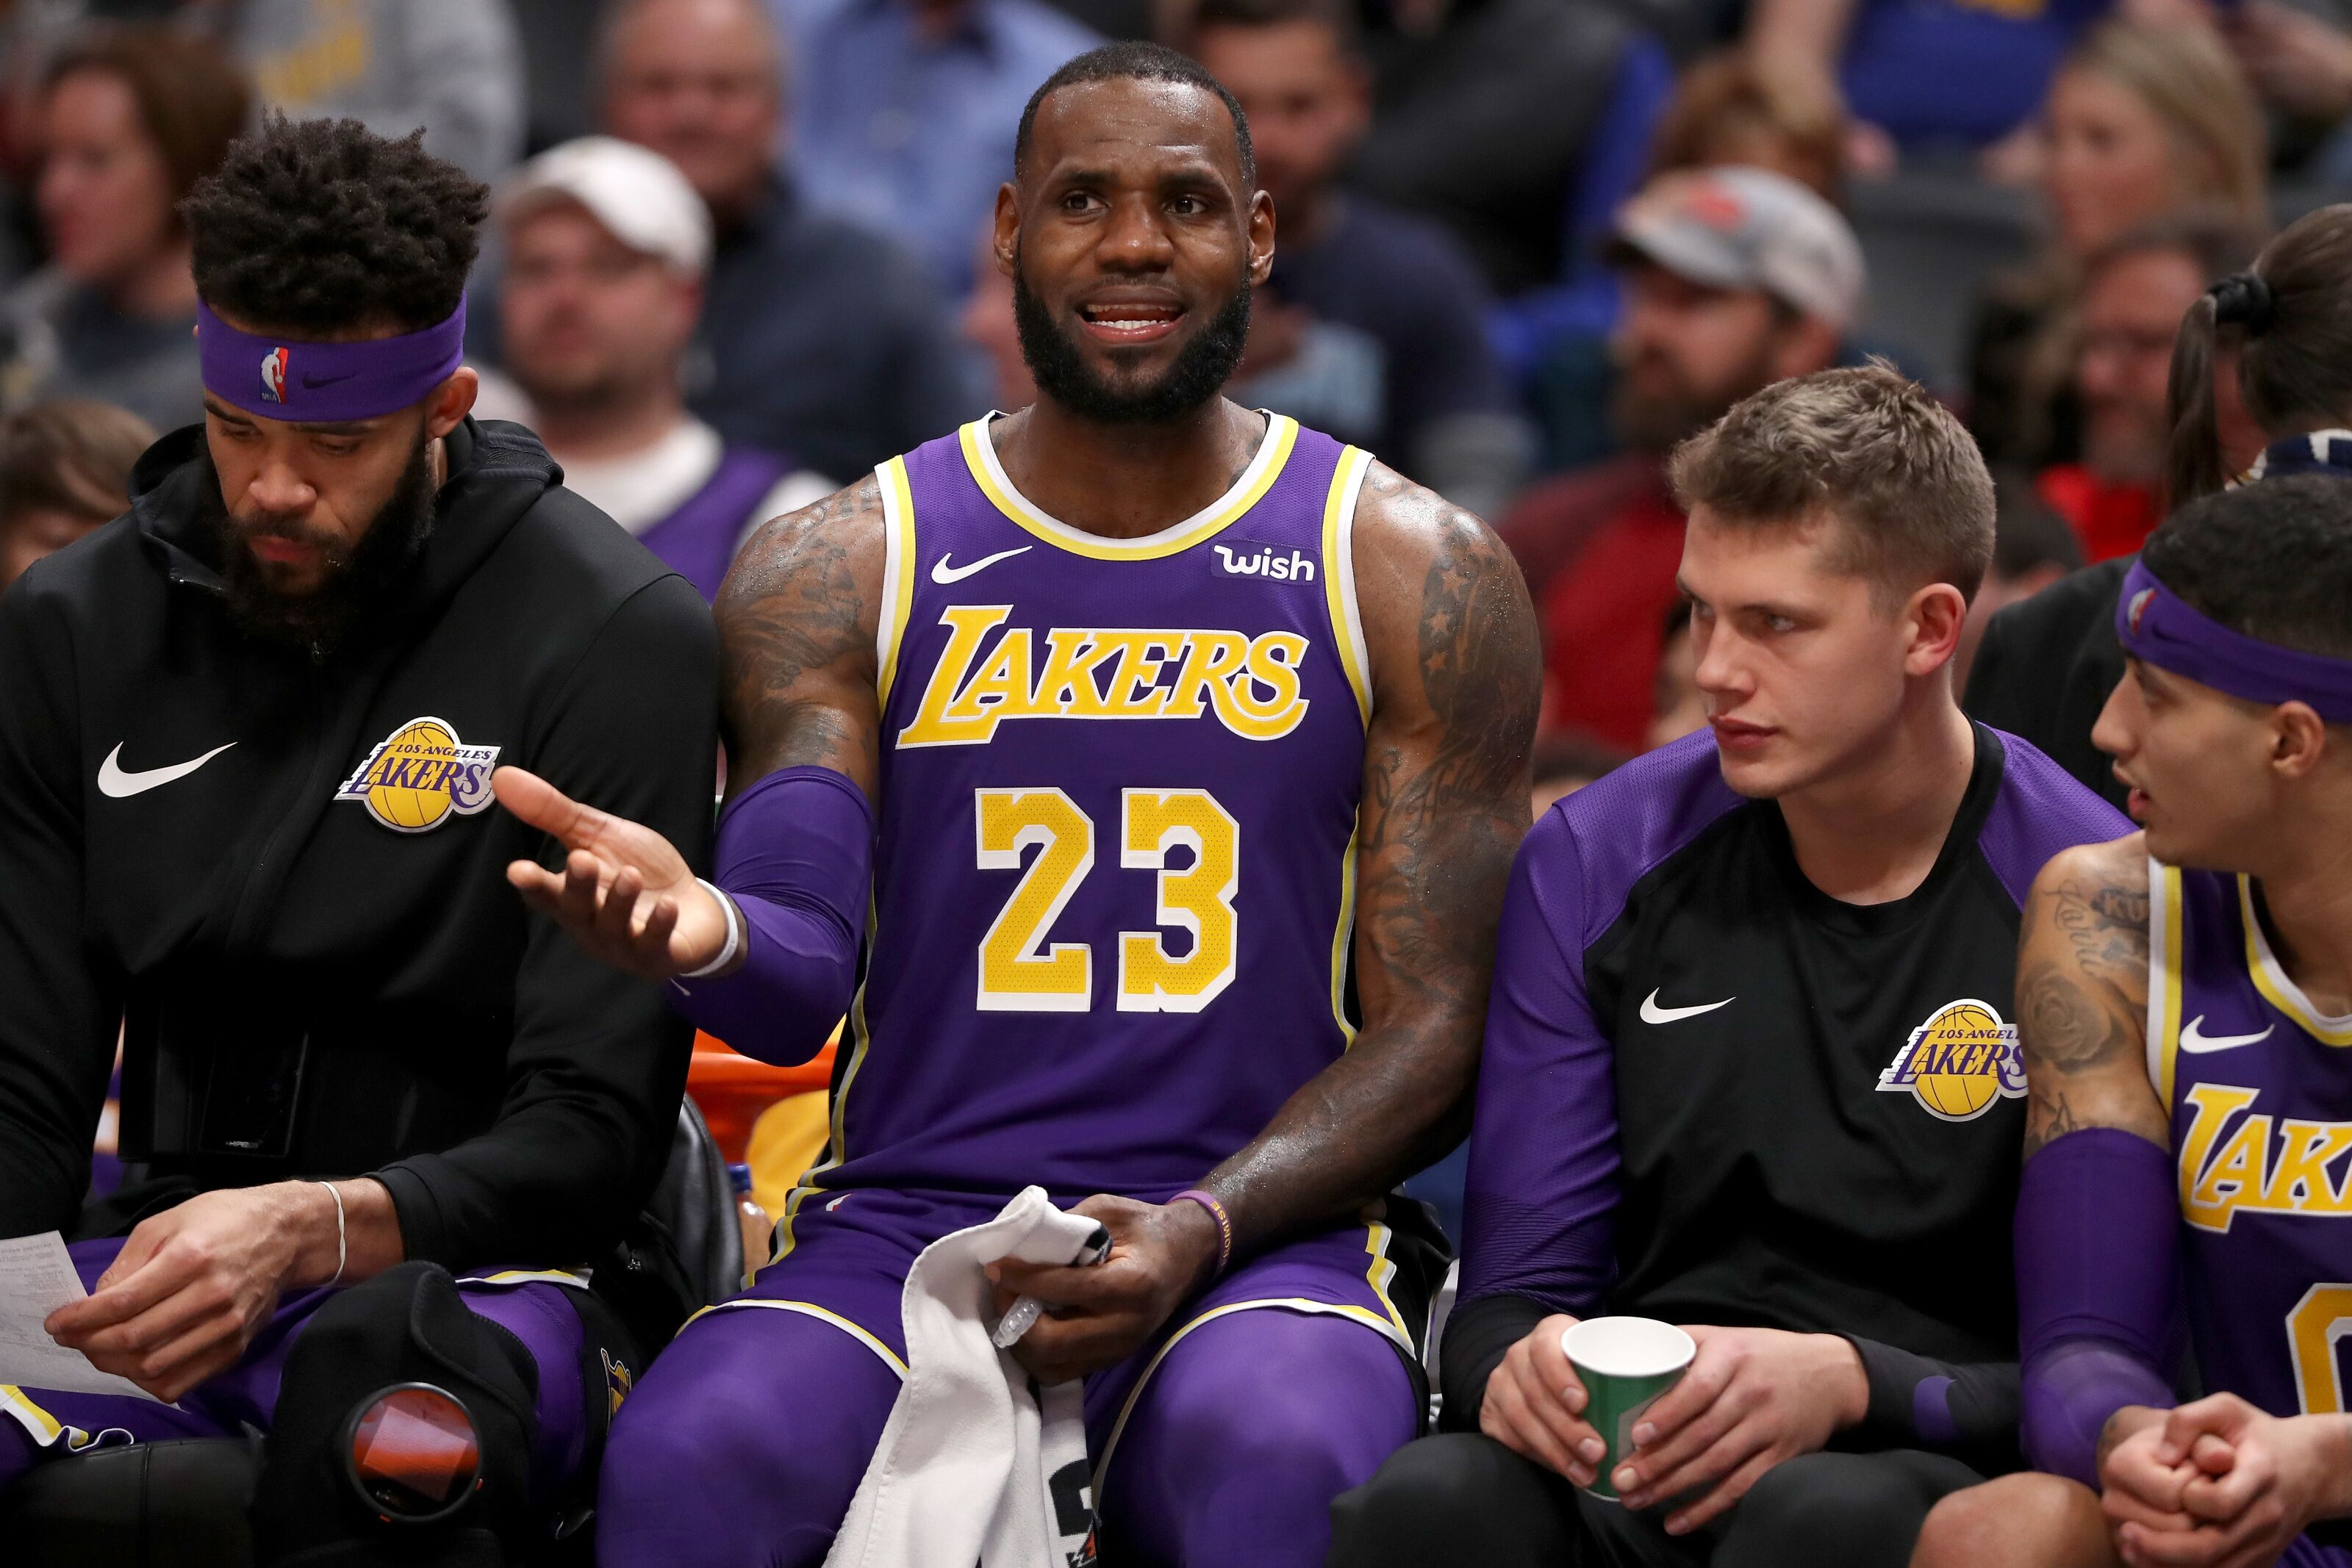 Los Angeles Lakers: Wanting LeBron James out of LA is laughable